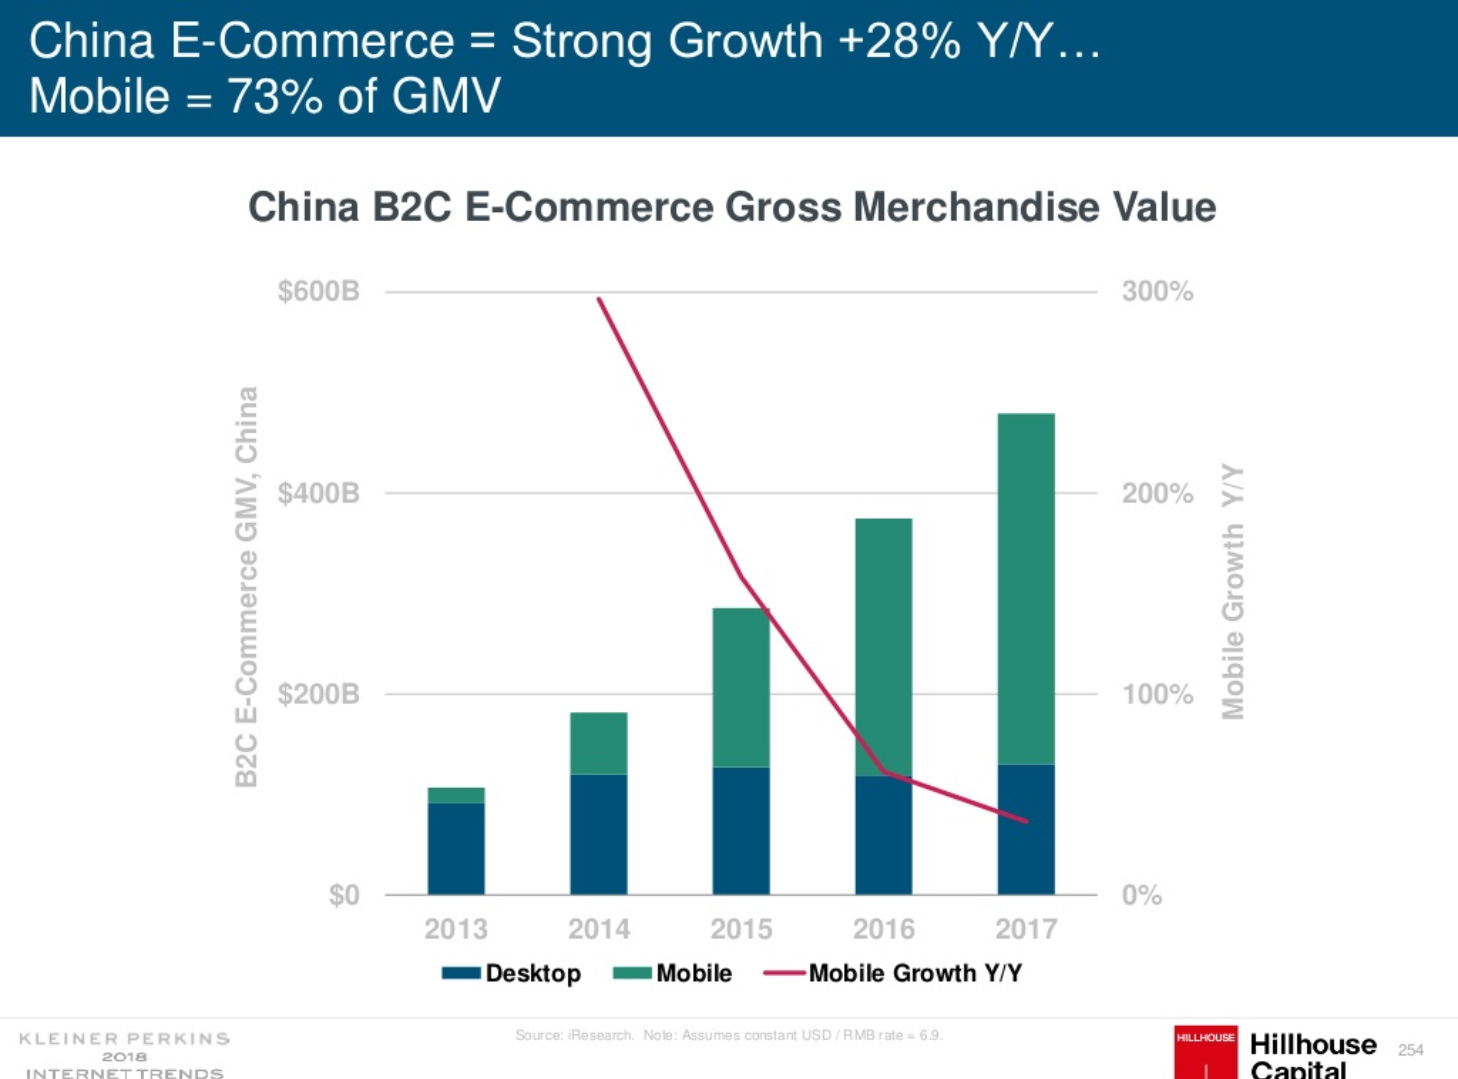 Gross merchandise value in China